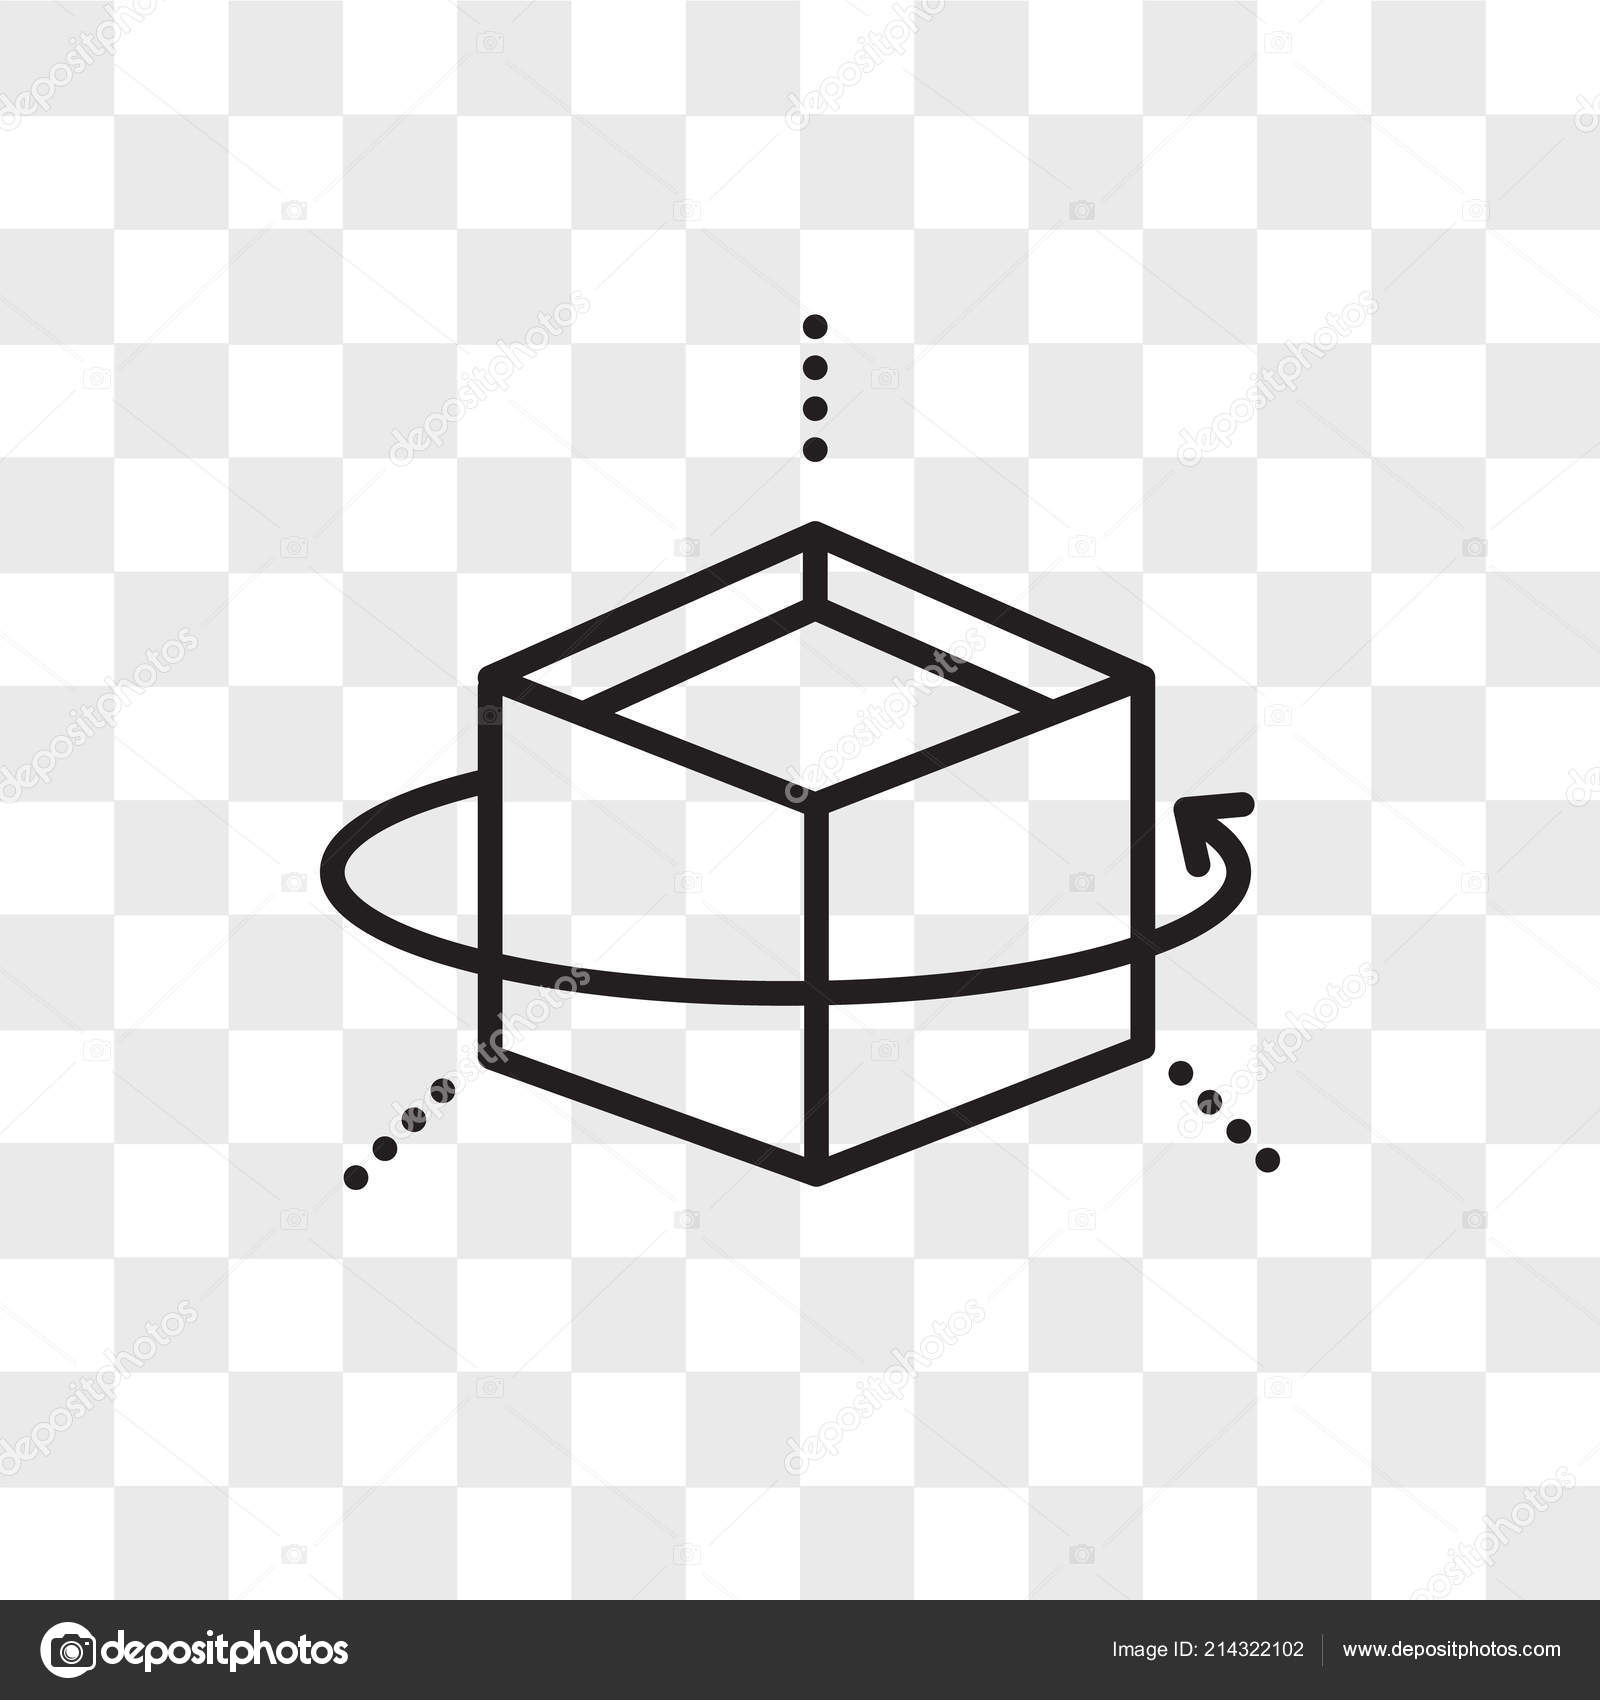 Cube vector icon isolated on transparent background, Cube